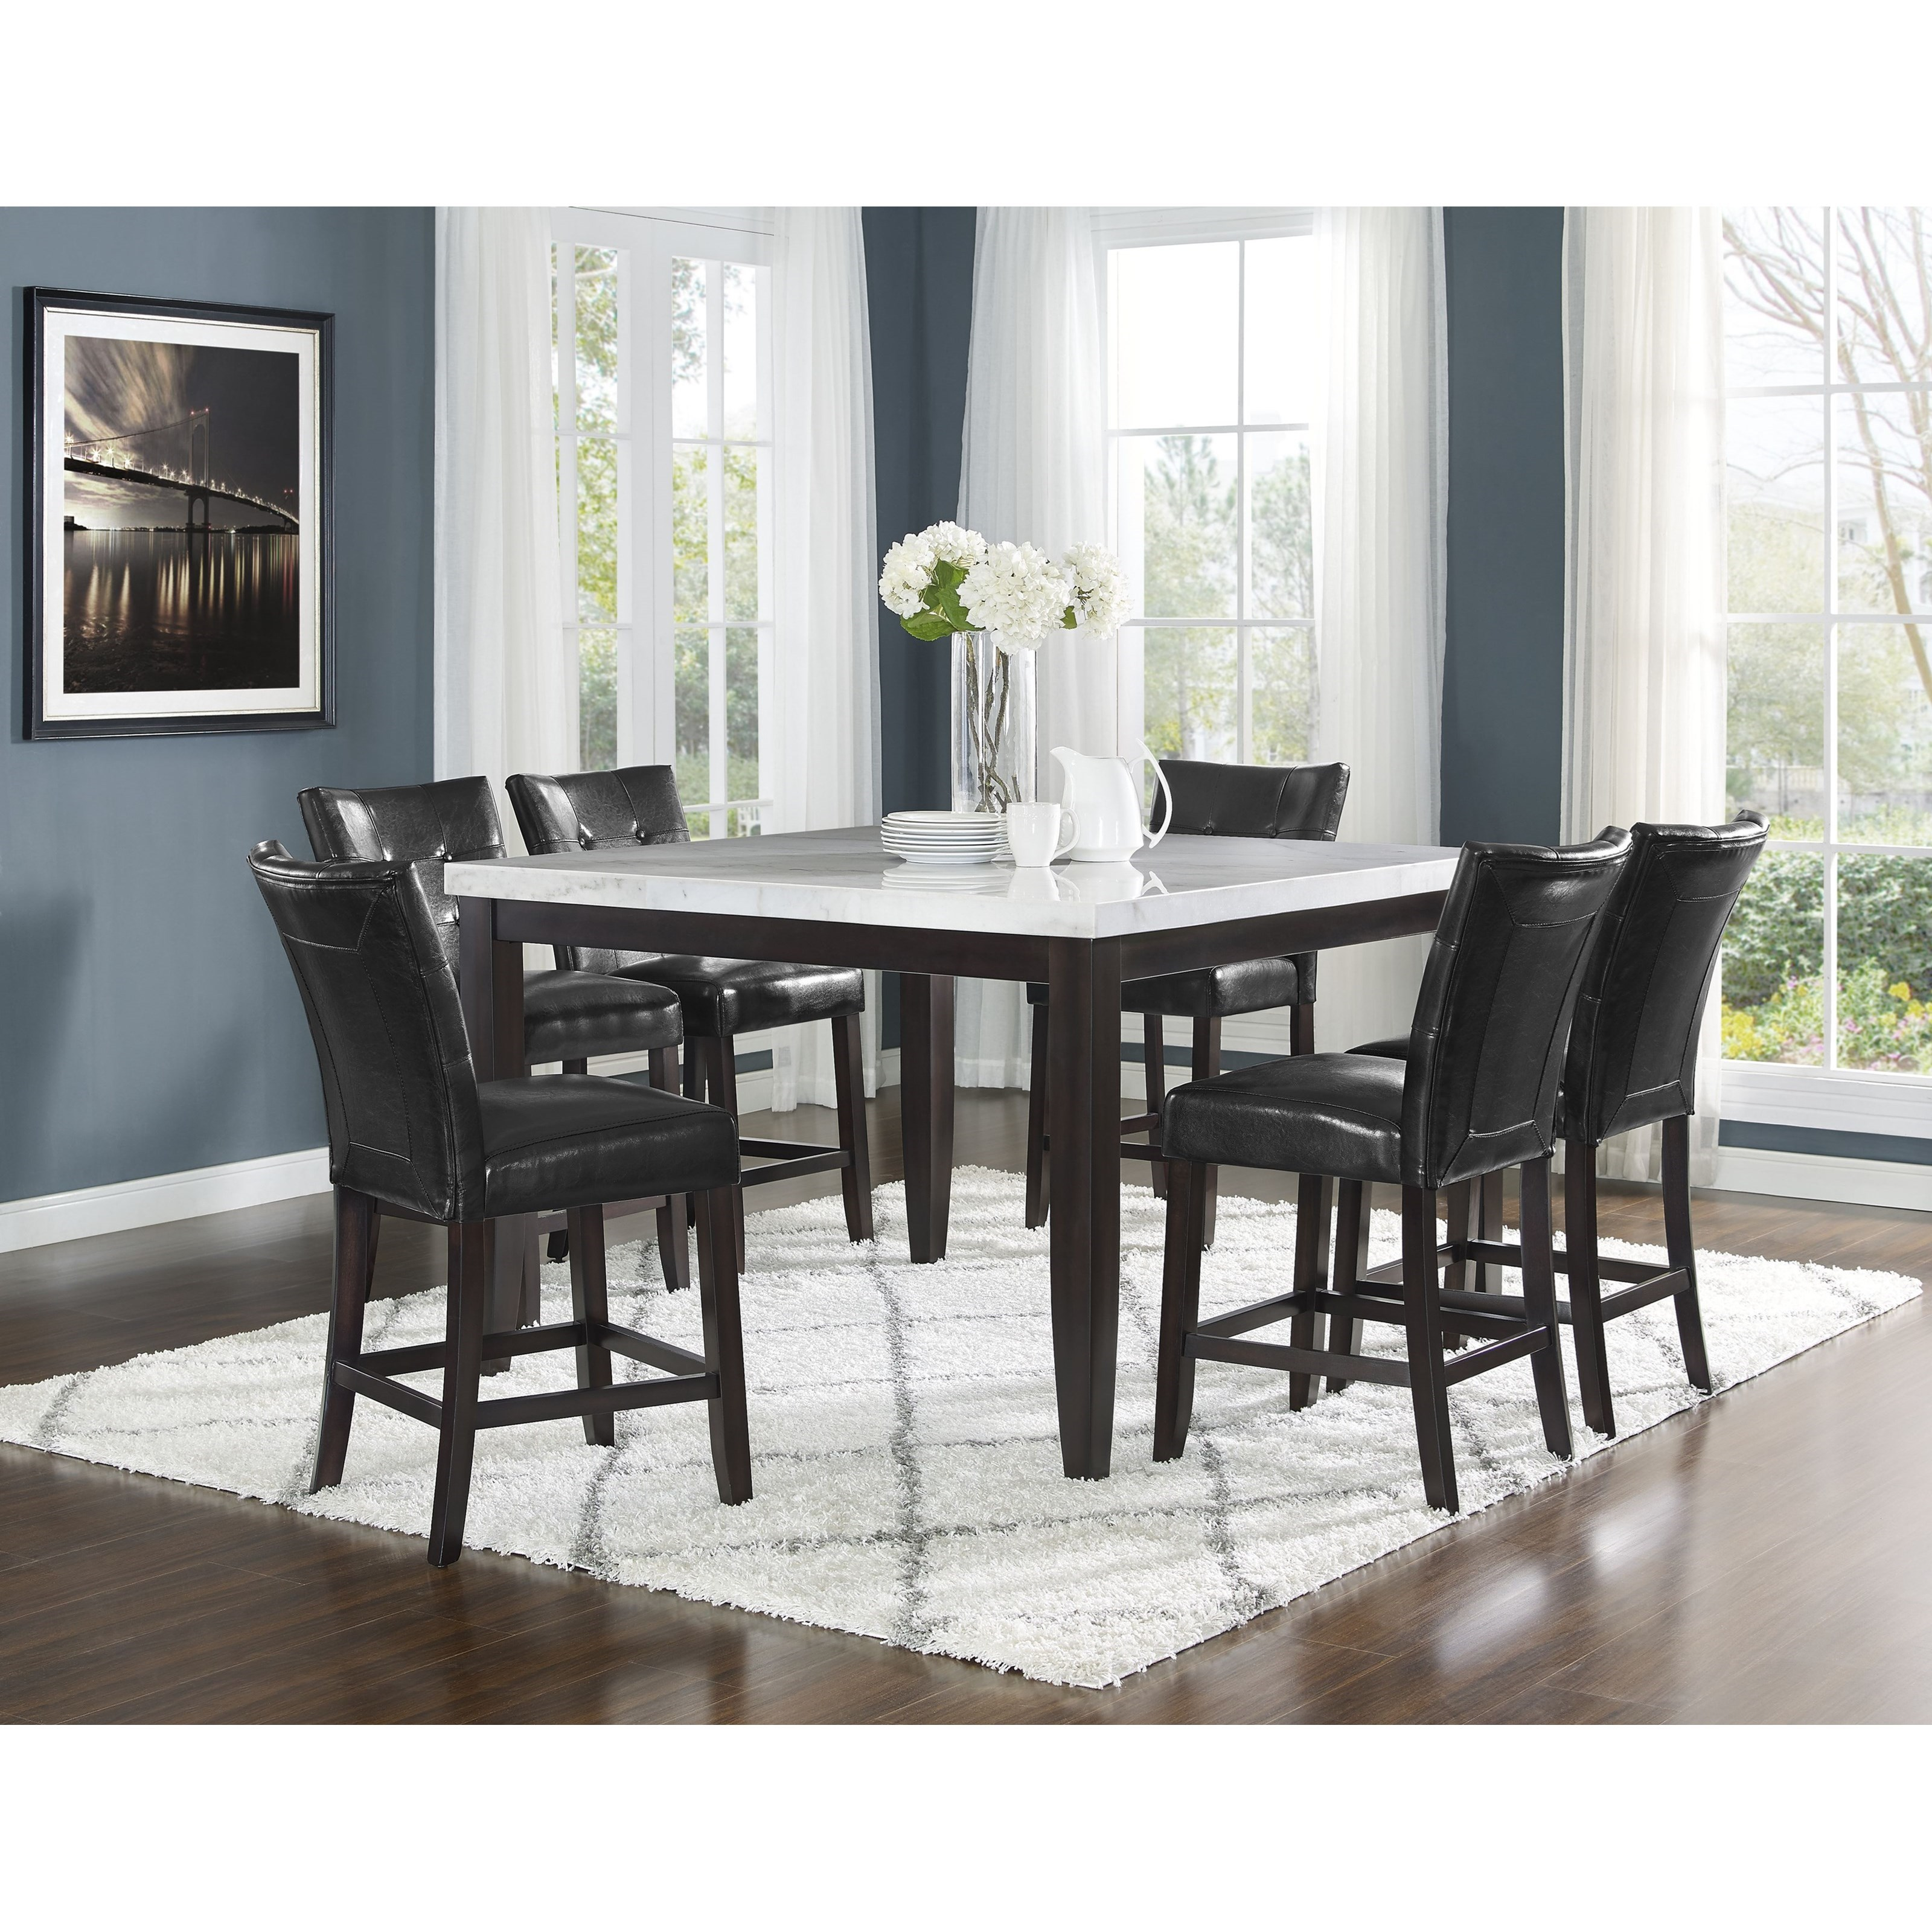 Francis 7 Piece Table and Chair Set by Steve Silver at Sam Levitz Furniture